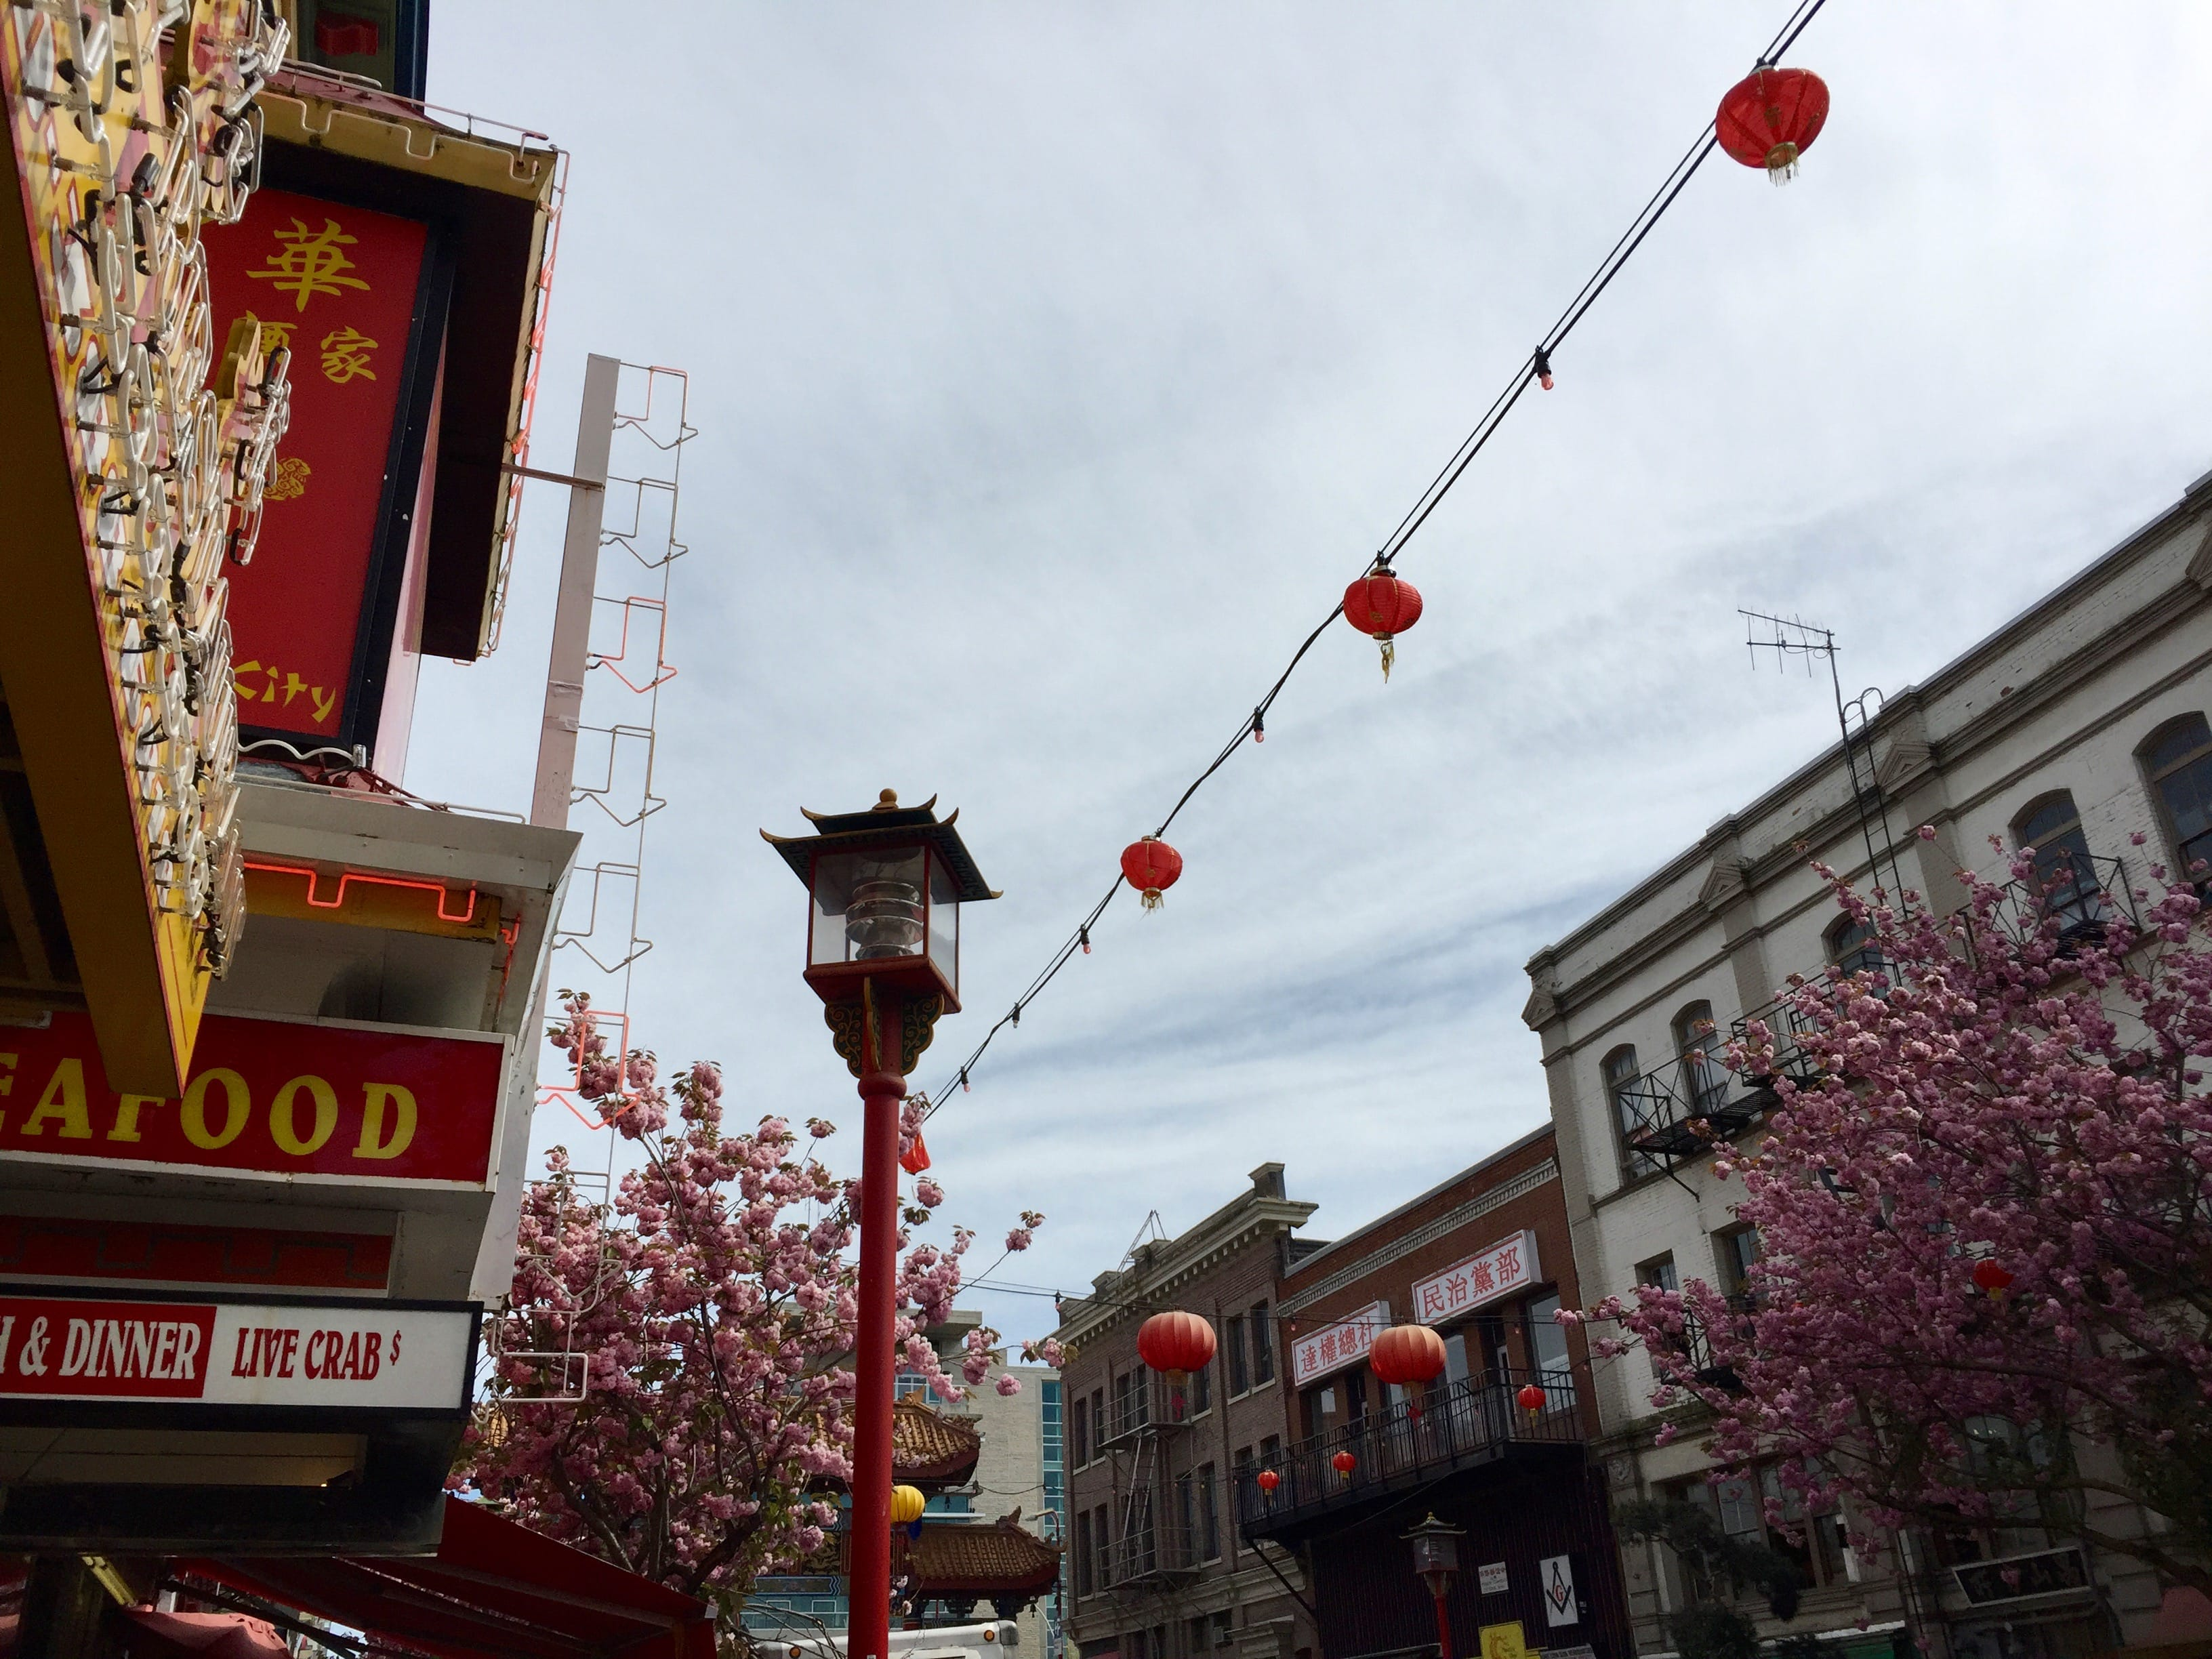 Upon arriving in Victoria (so worth the trek), we visited China Town first.